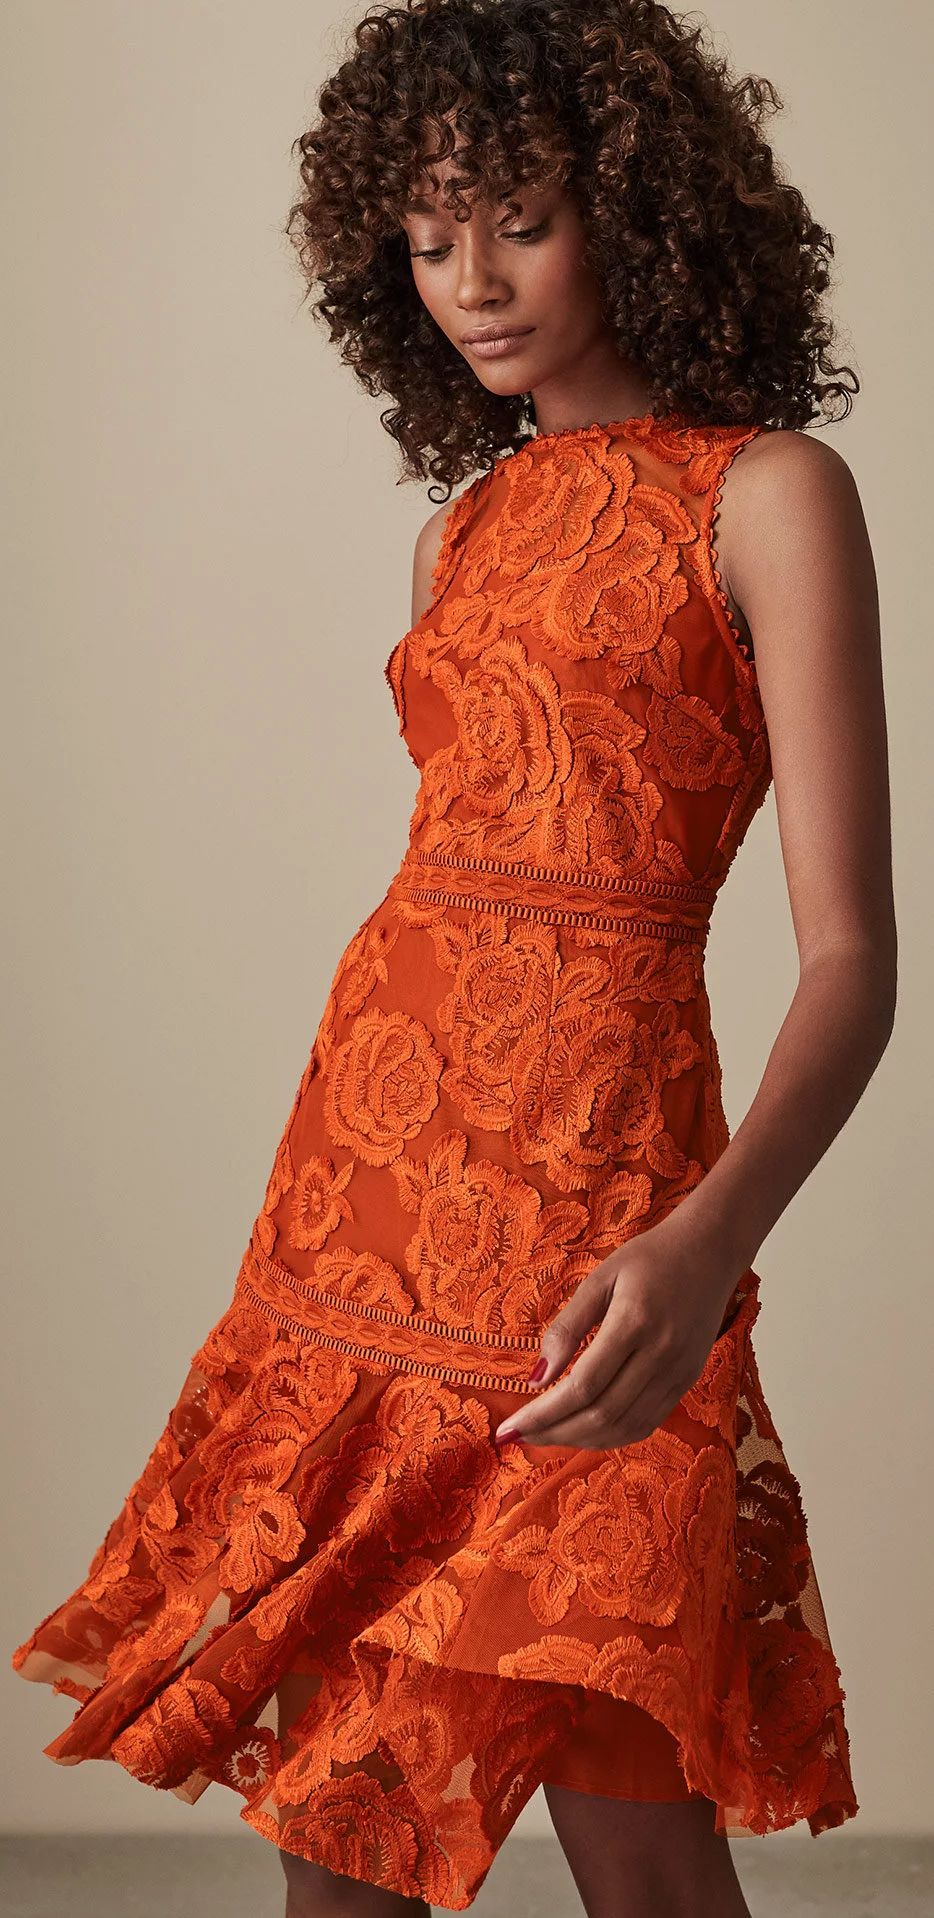 f401c8e25c Burnt Orange Lace Floral Dress. Perfect Dress for a Spring Wedding Guest  Outfit